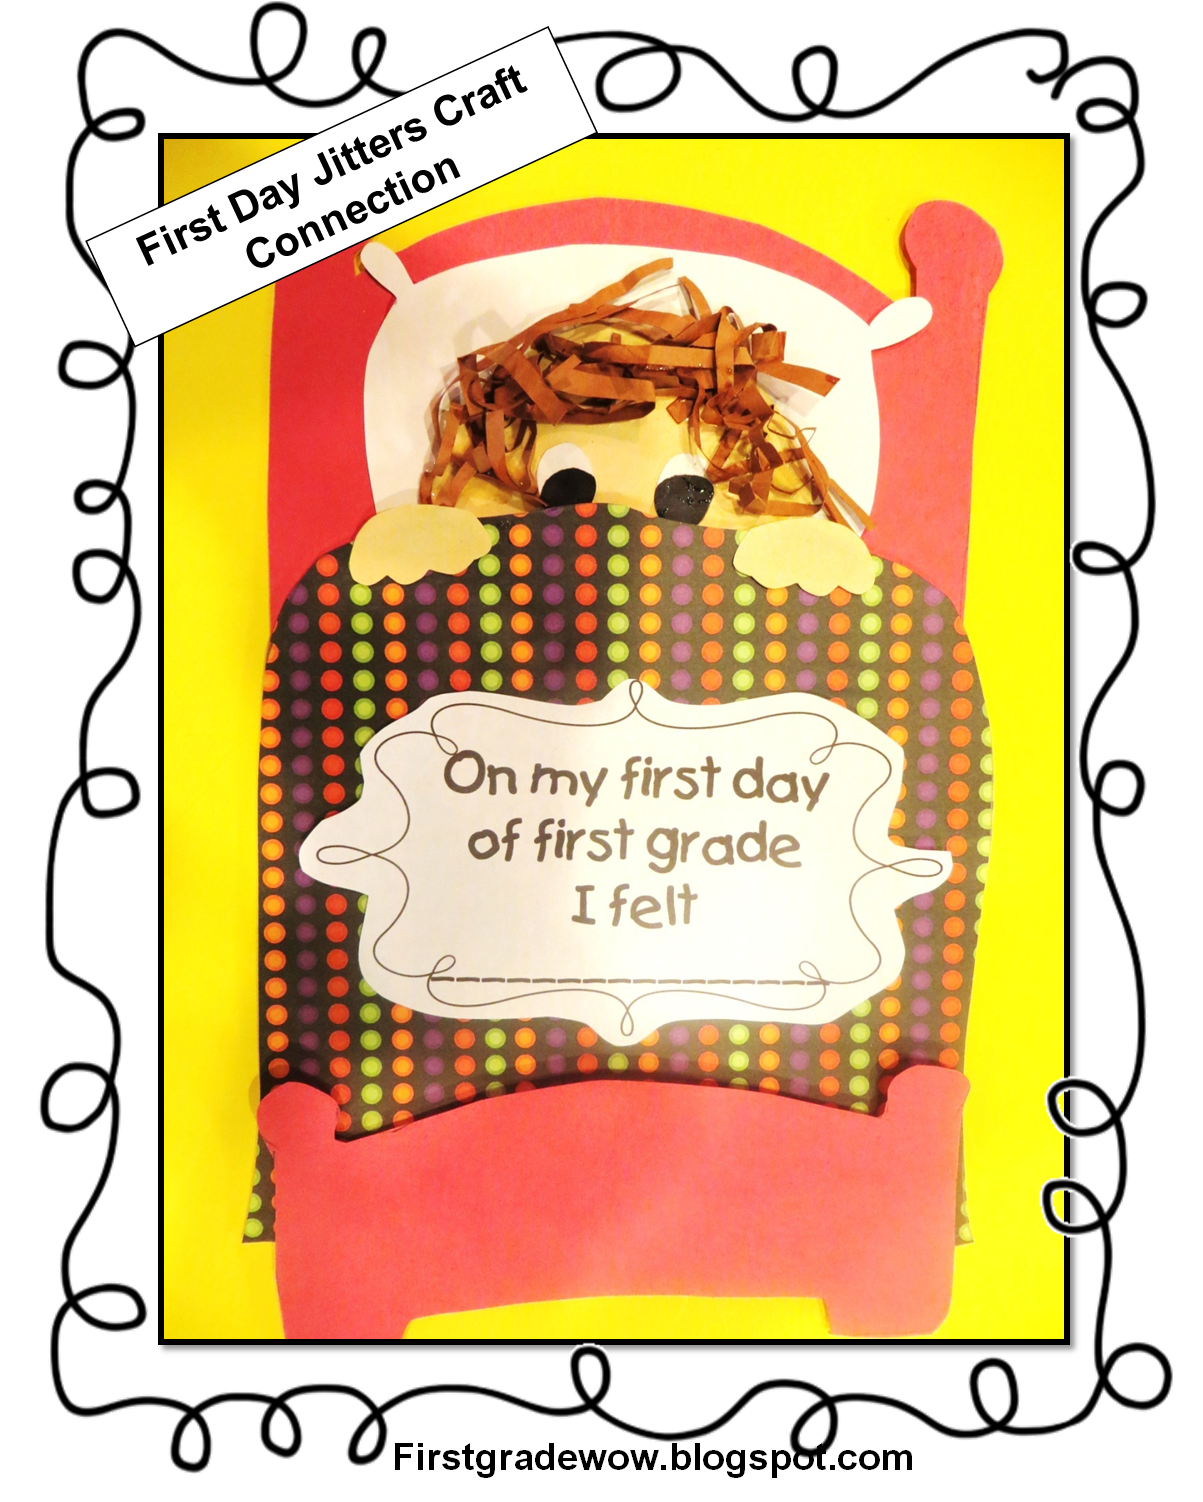 First Grade Wow: First Day Jitters! - First Day Jitters PNG